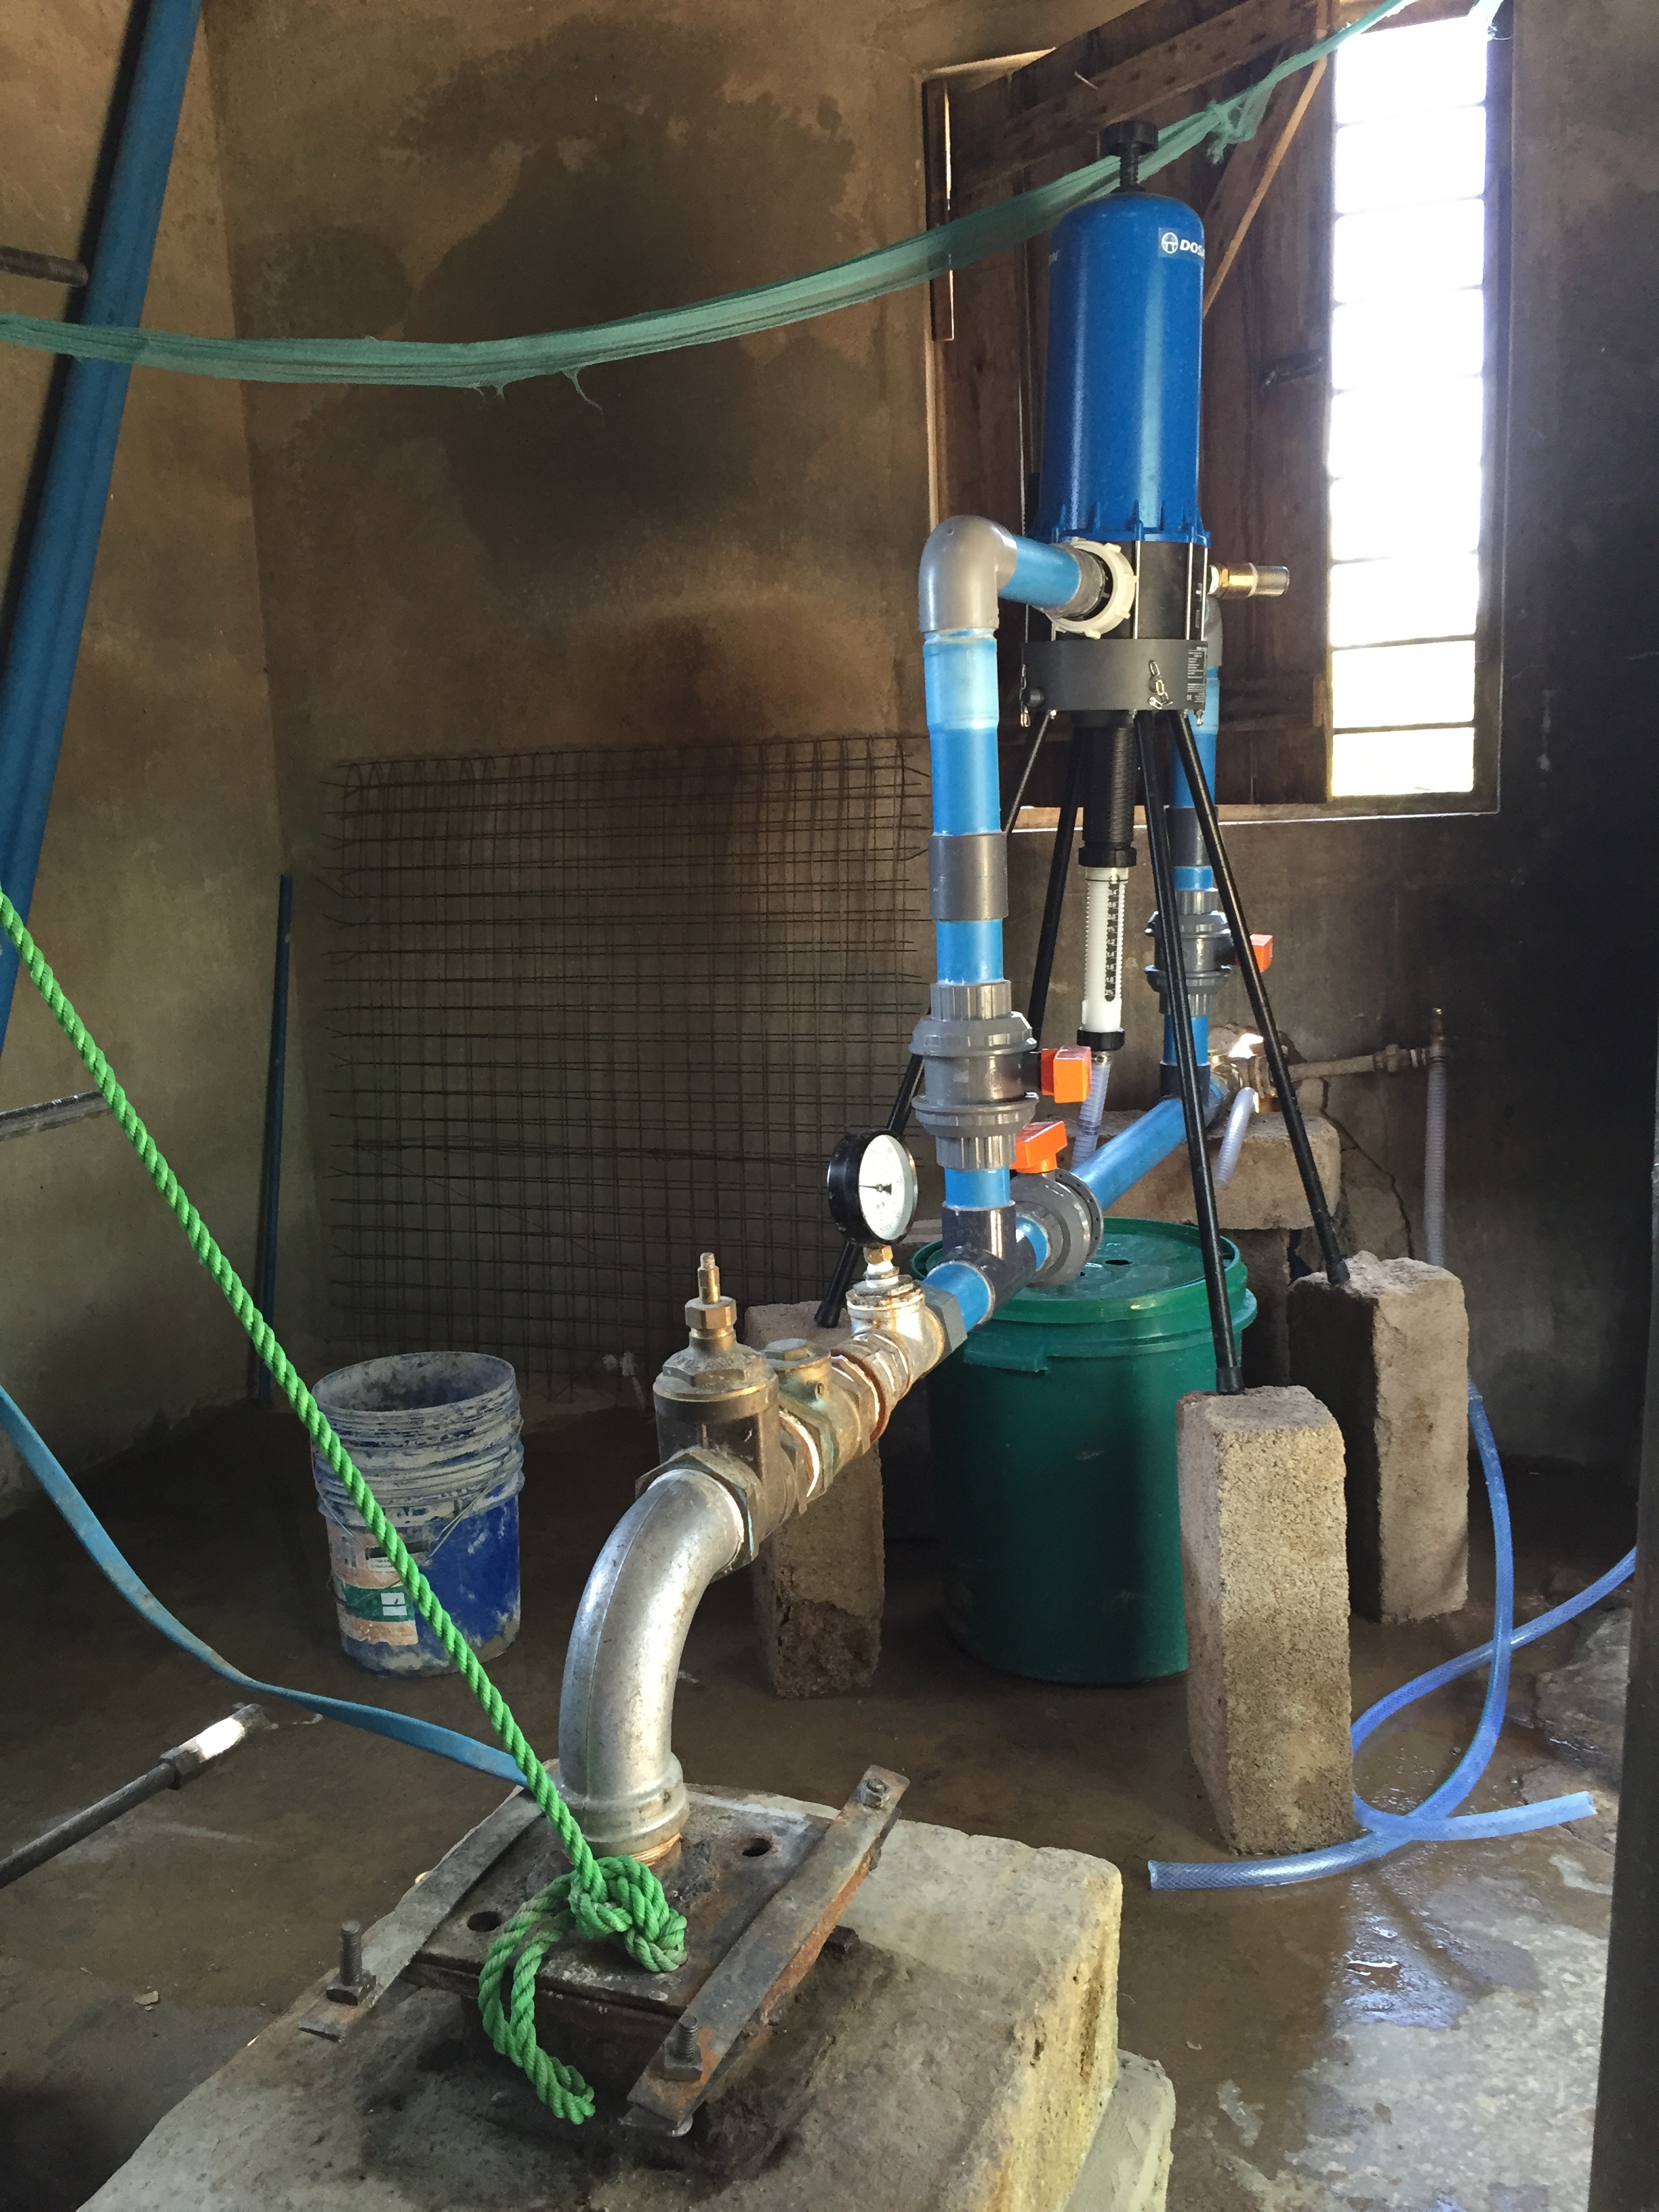 The dosatron adds chlorine to disinfect the water